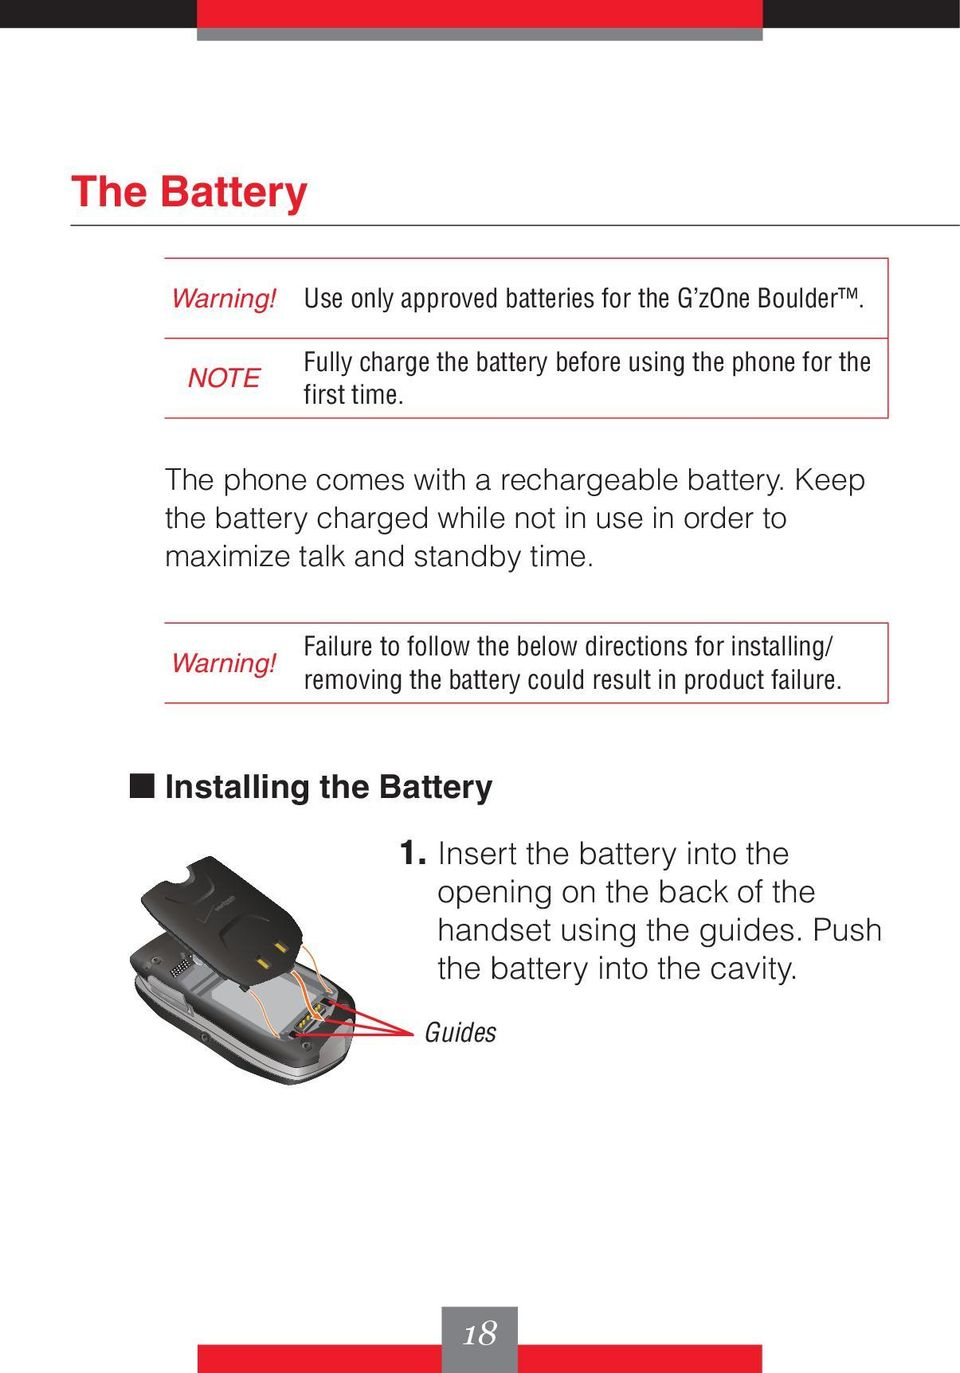 Keep the battery charged while not in use in order to maximize talk and standby time. Warning!